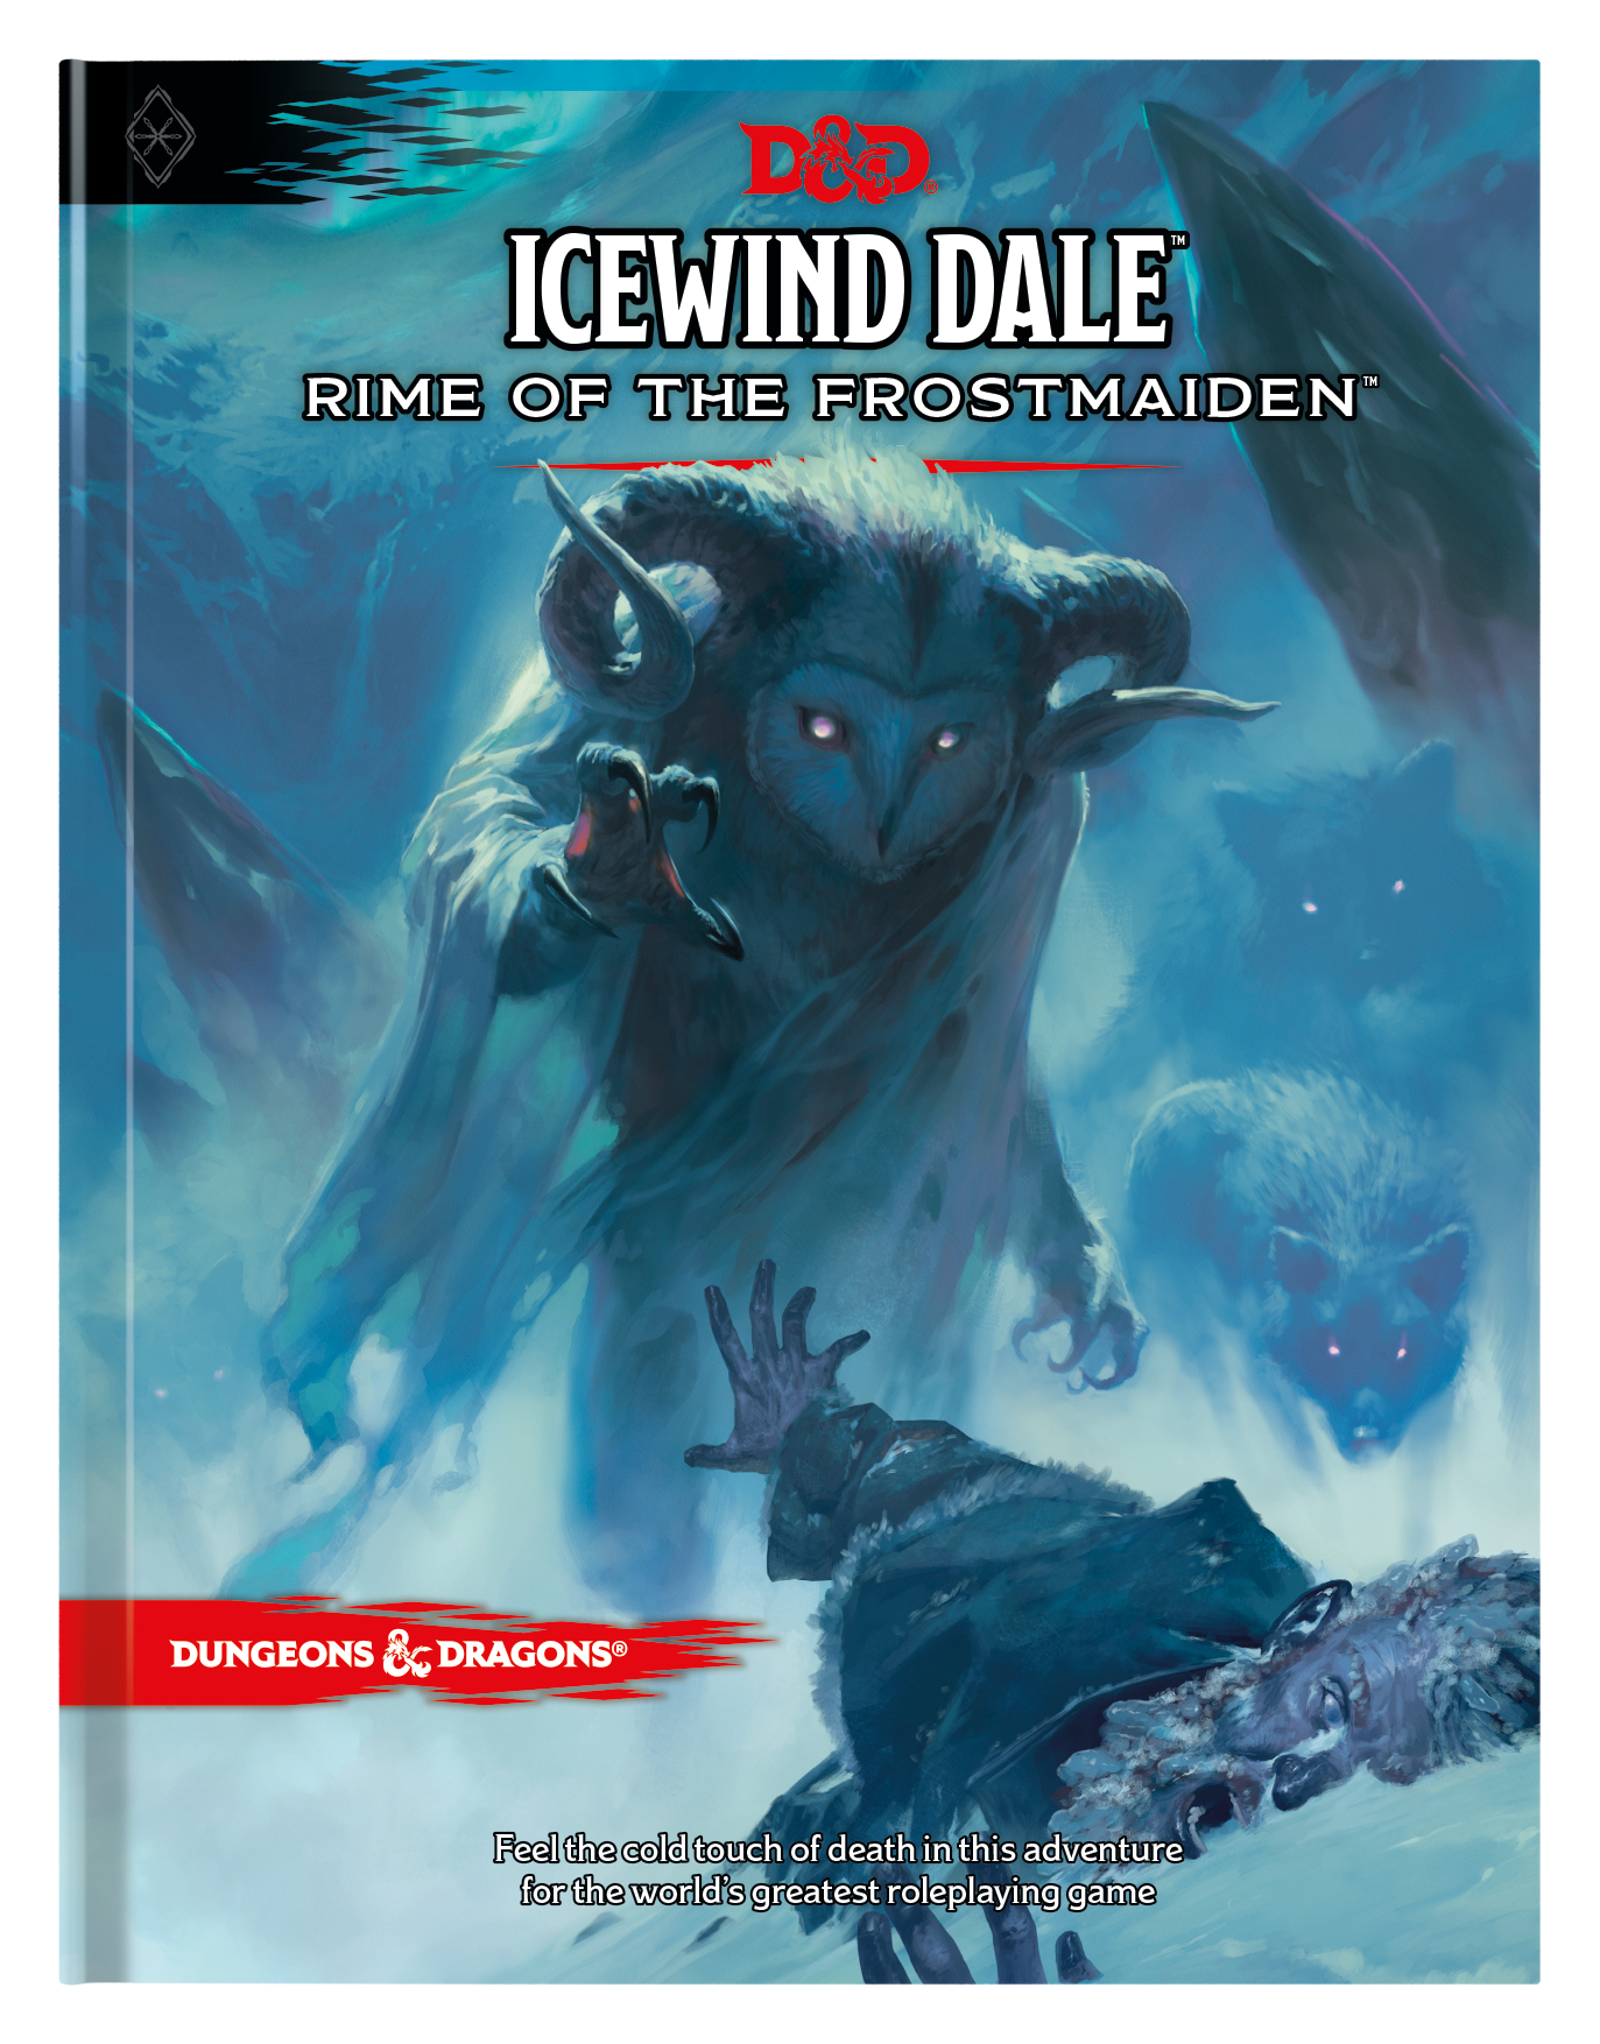 Icewind Dale: Rime of the Frostmaiden's regular cover...